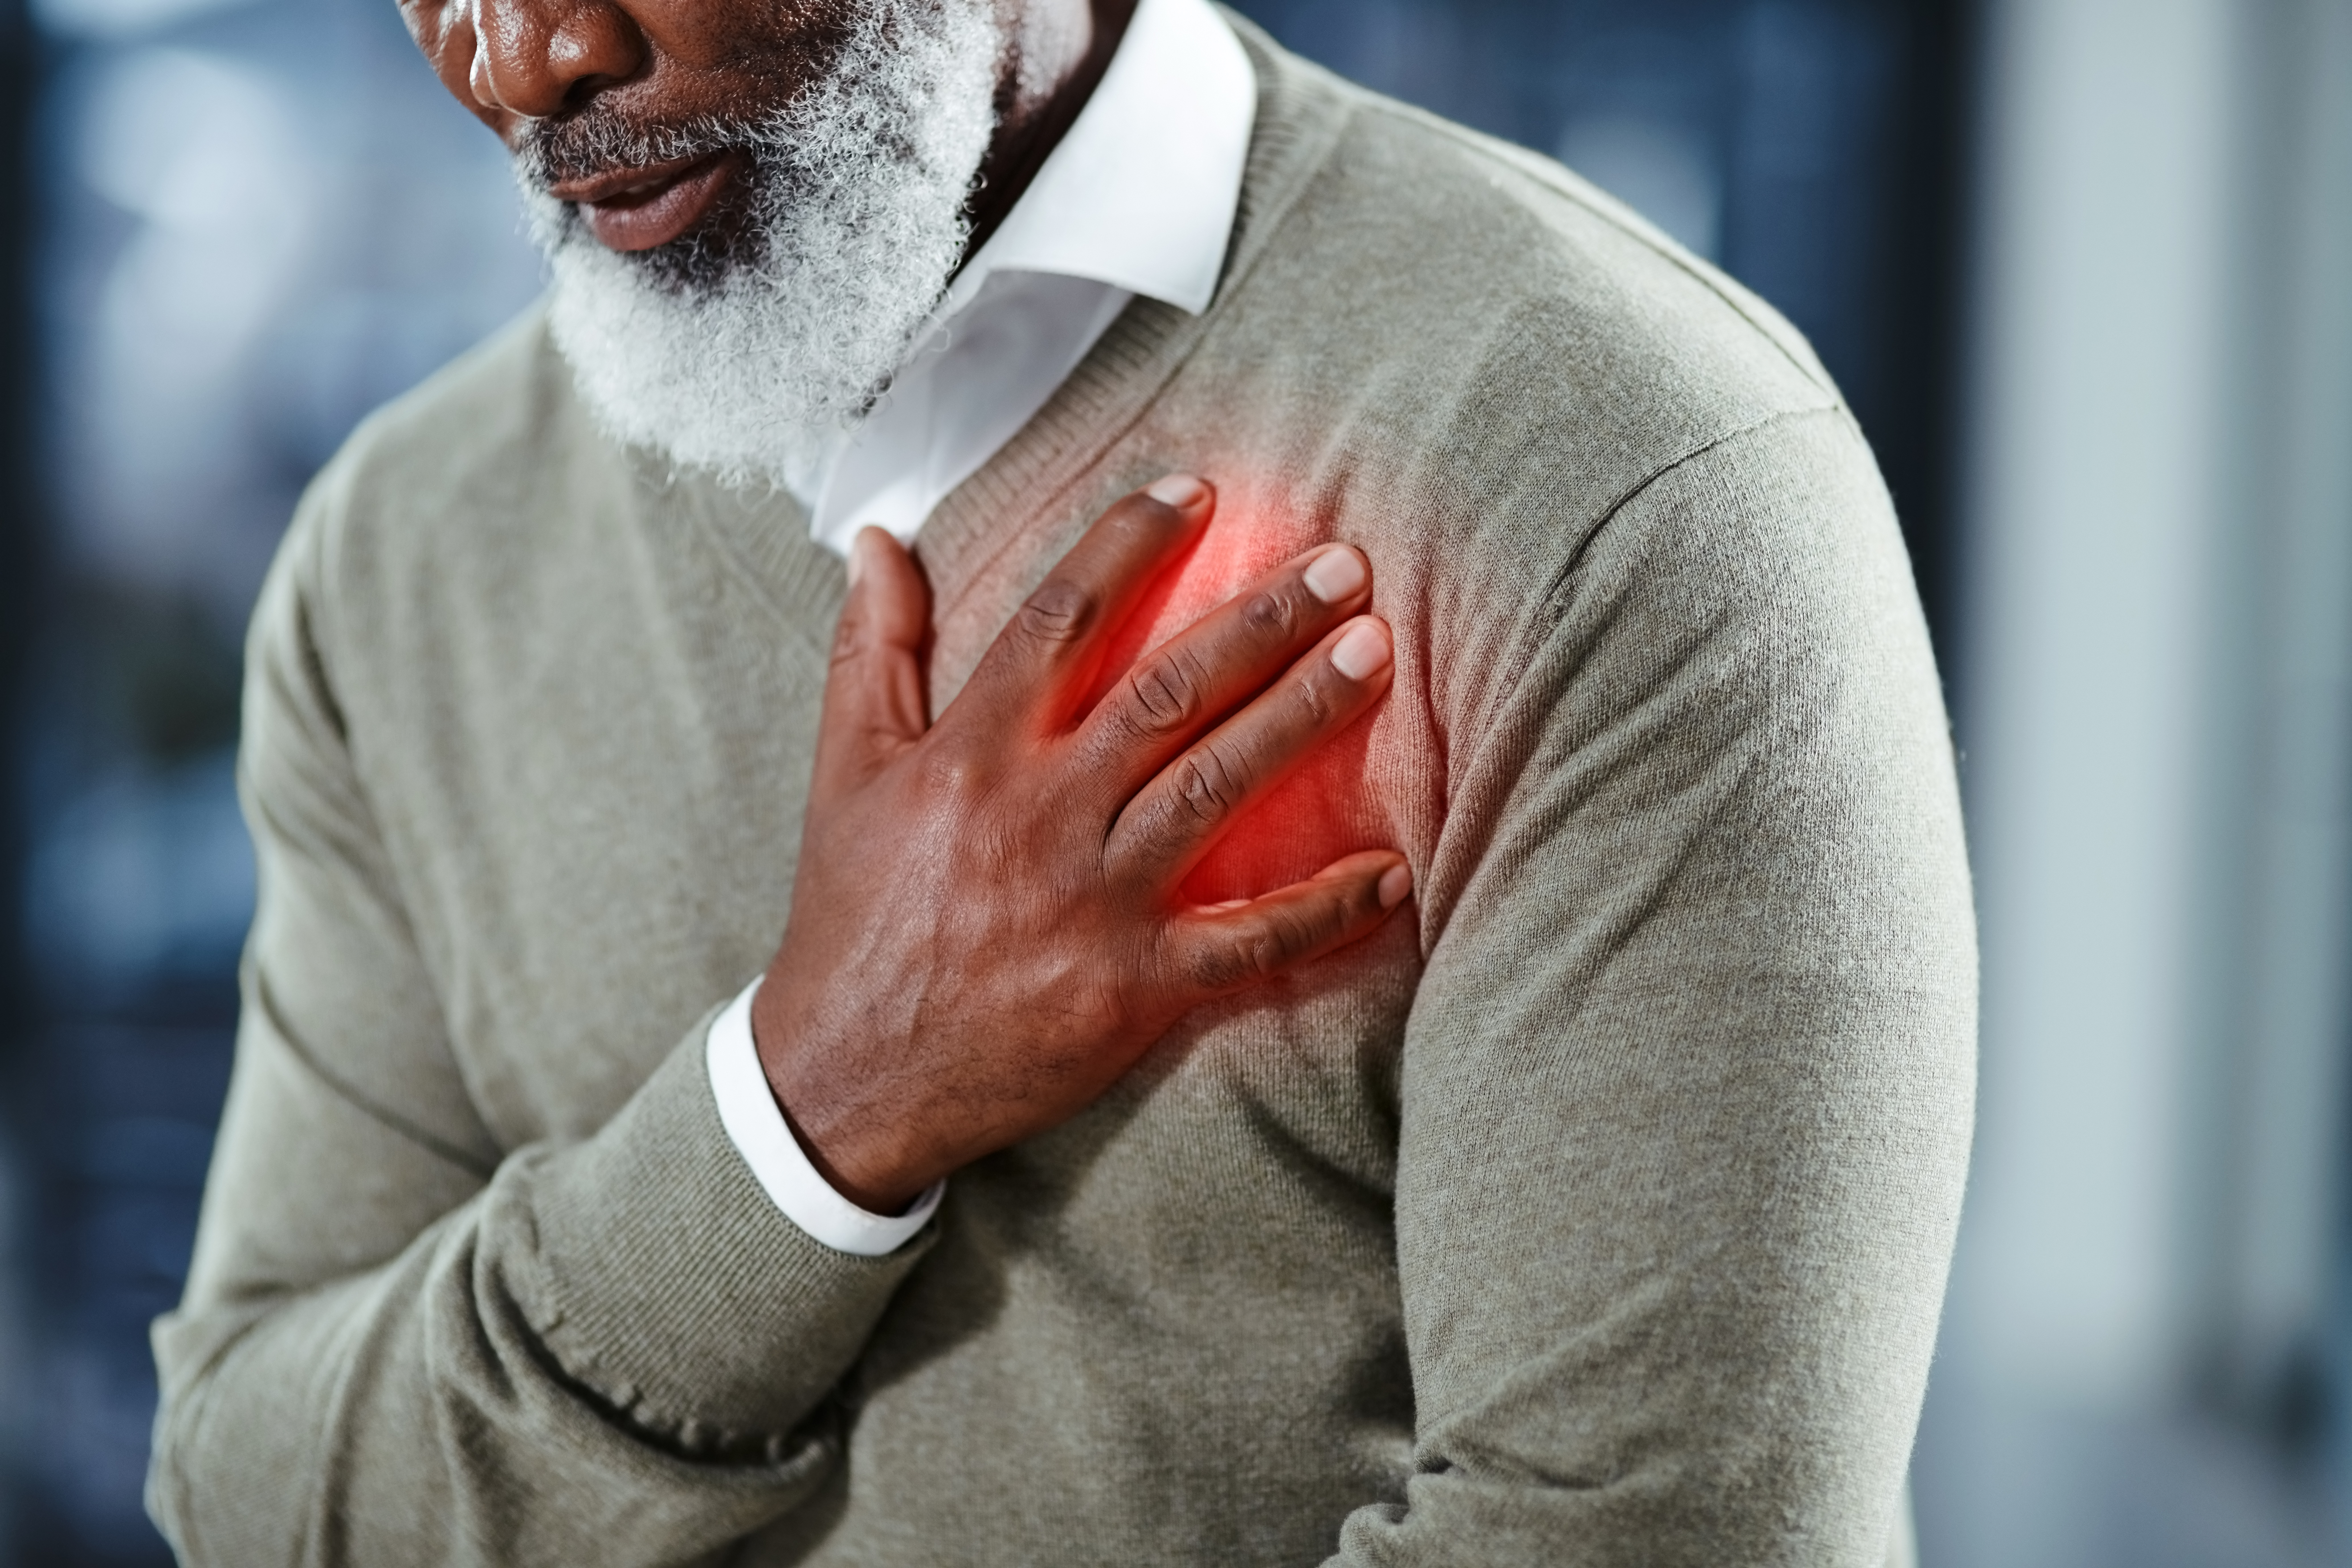 older man hand on heart in pain